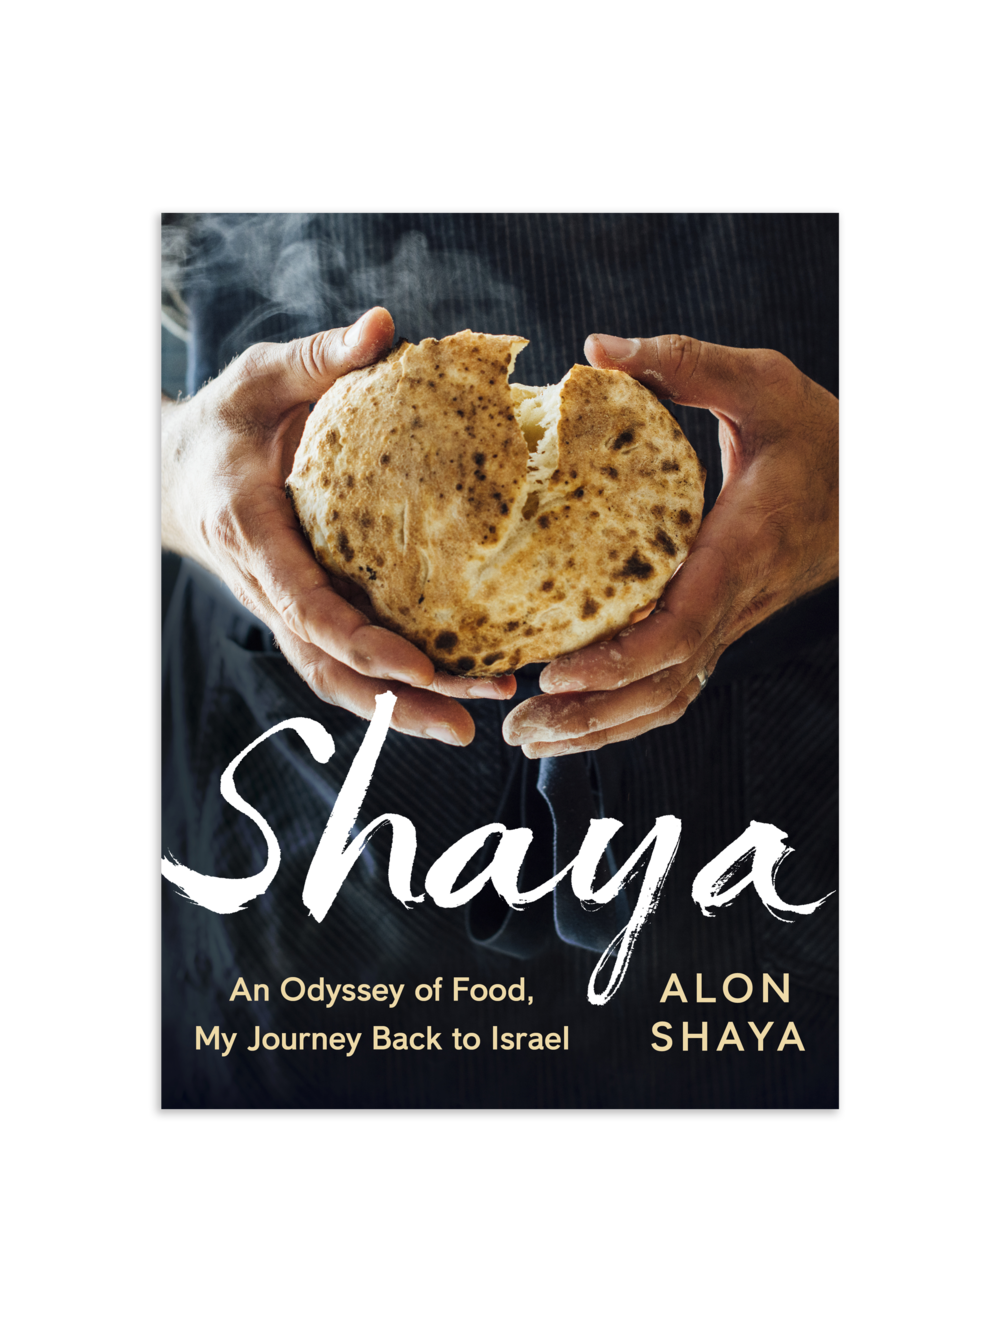 shaya_book_cover.png